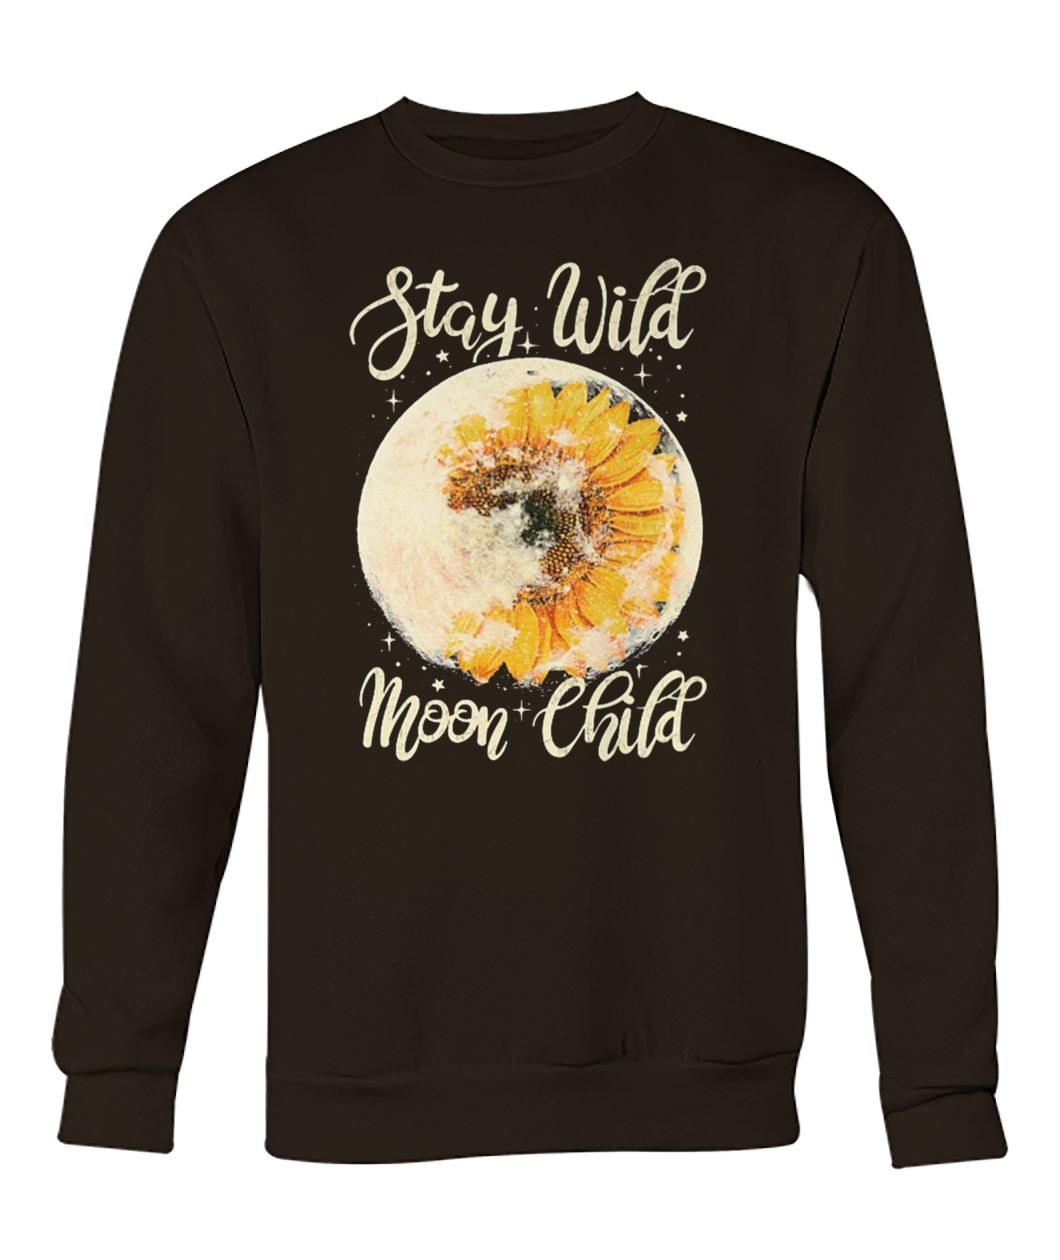 Stay wild moon child hippie sunflower crew neck sweatshirt